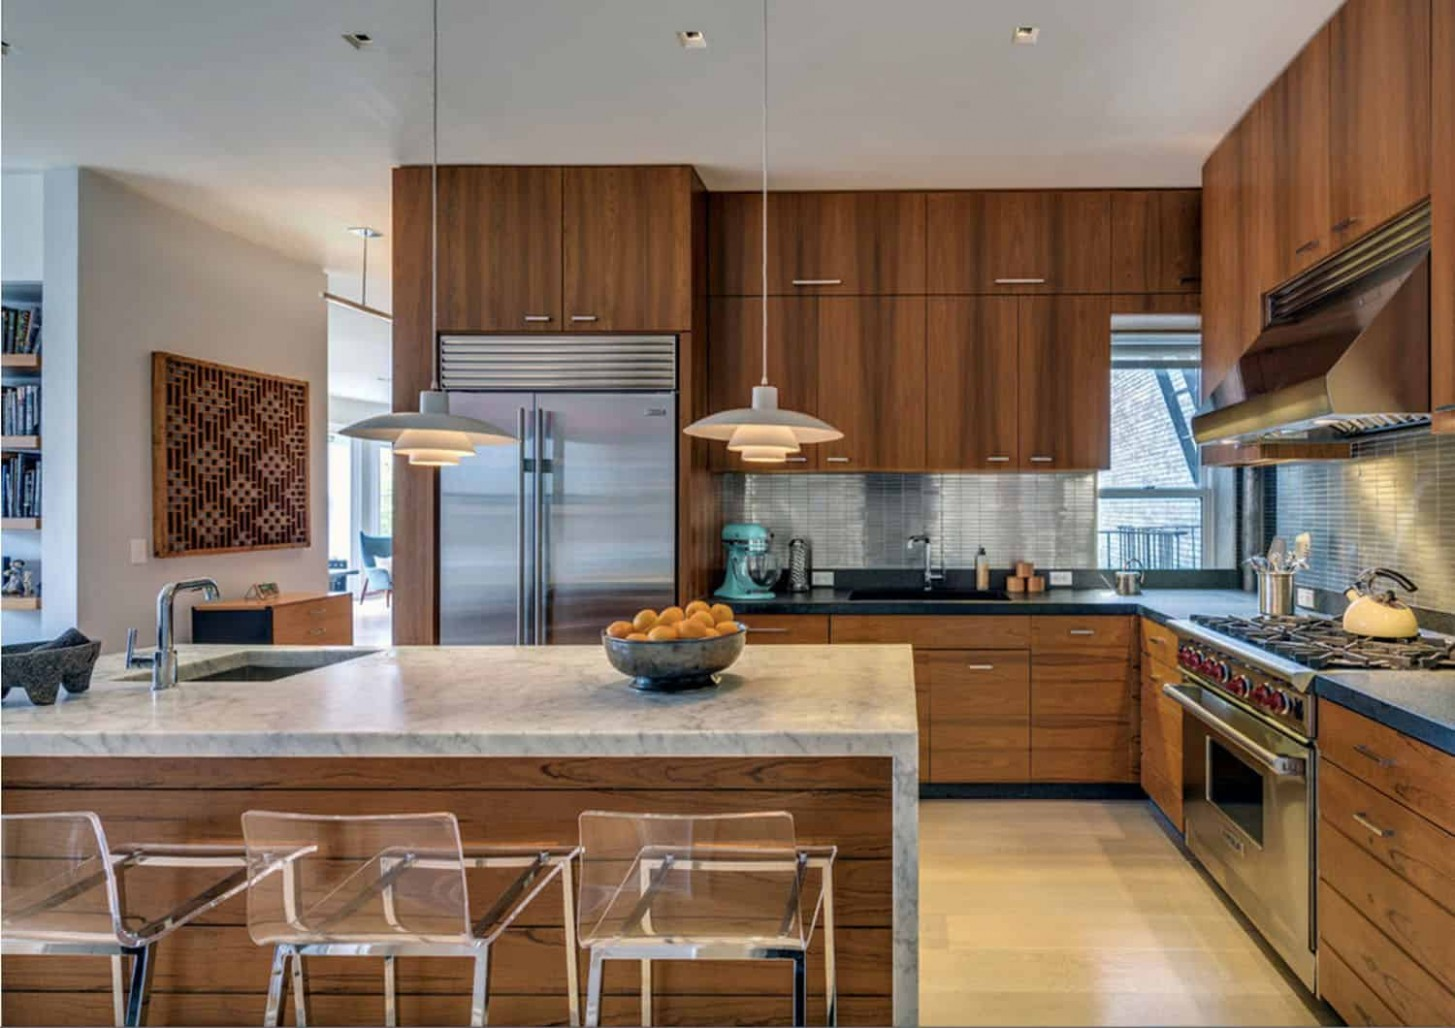 8 Incredible Midcentury Modern Kitchens to Delight the Senses - Dark Vineer Mid Century Kitchen Cabinets